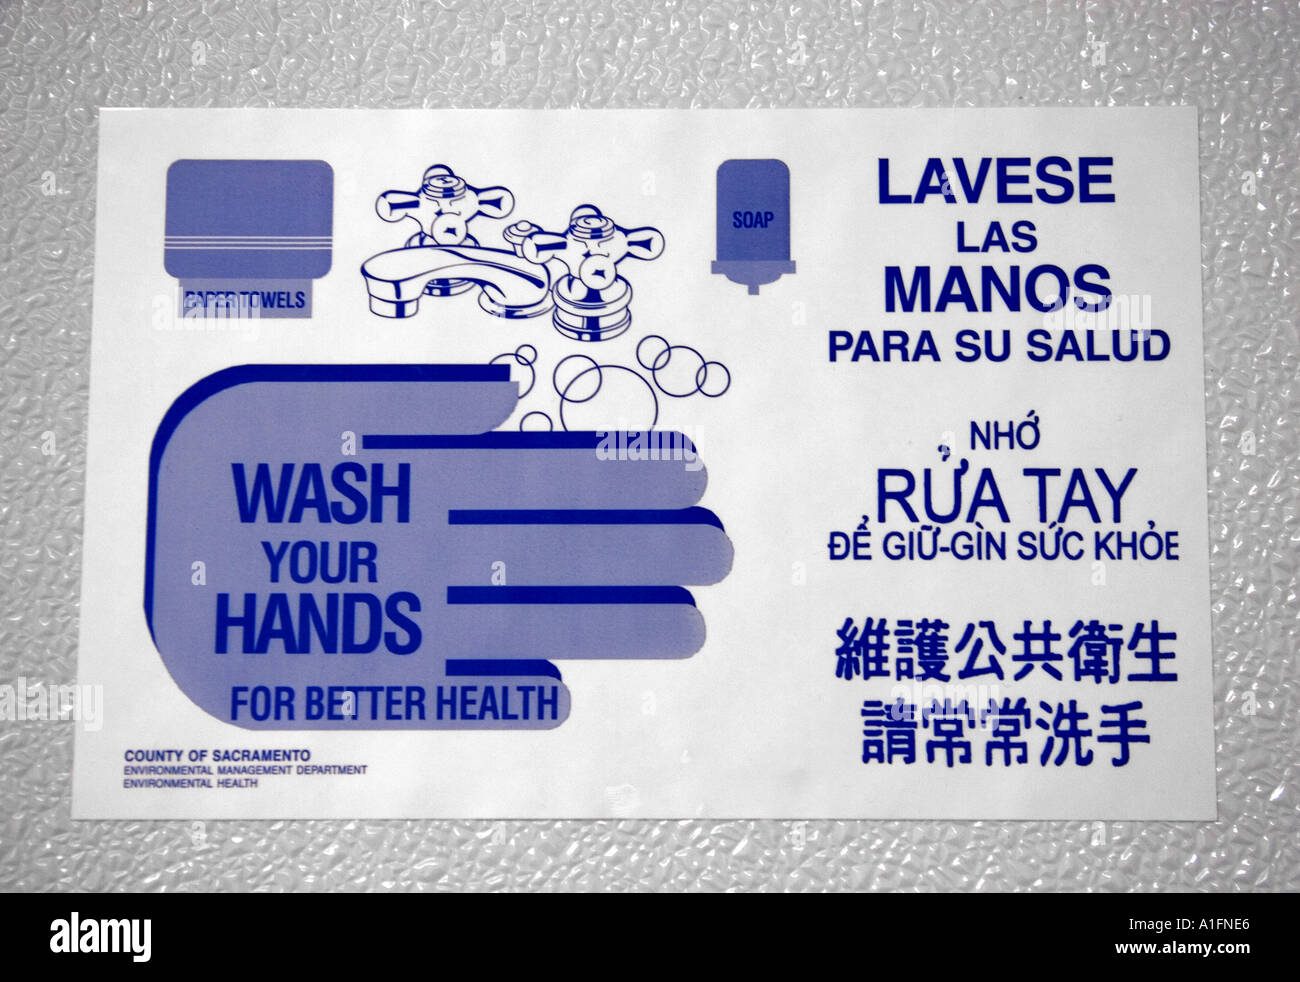 Wash your hands sign in a bathroom showing different languages Stock Photo: 3344869 - Alamy